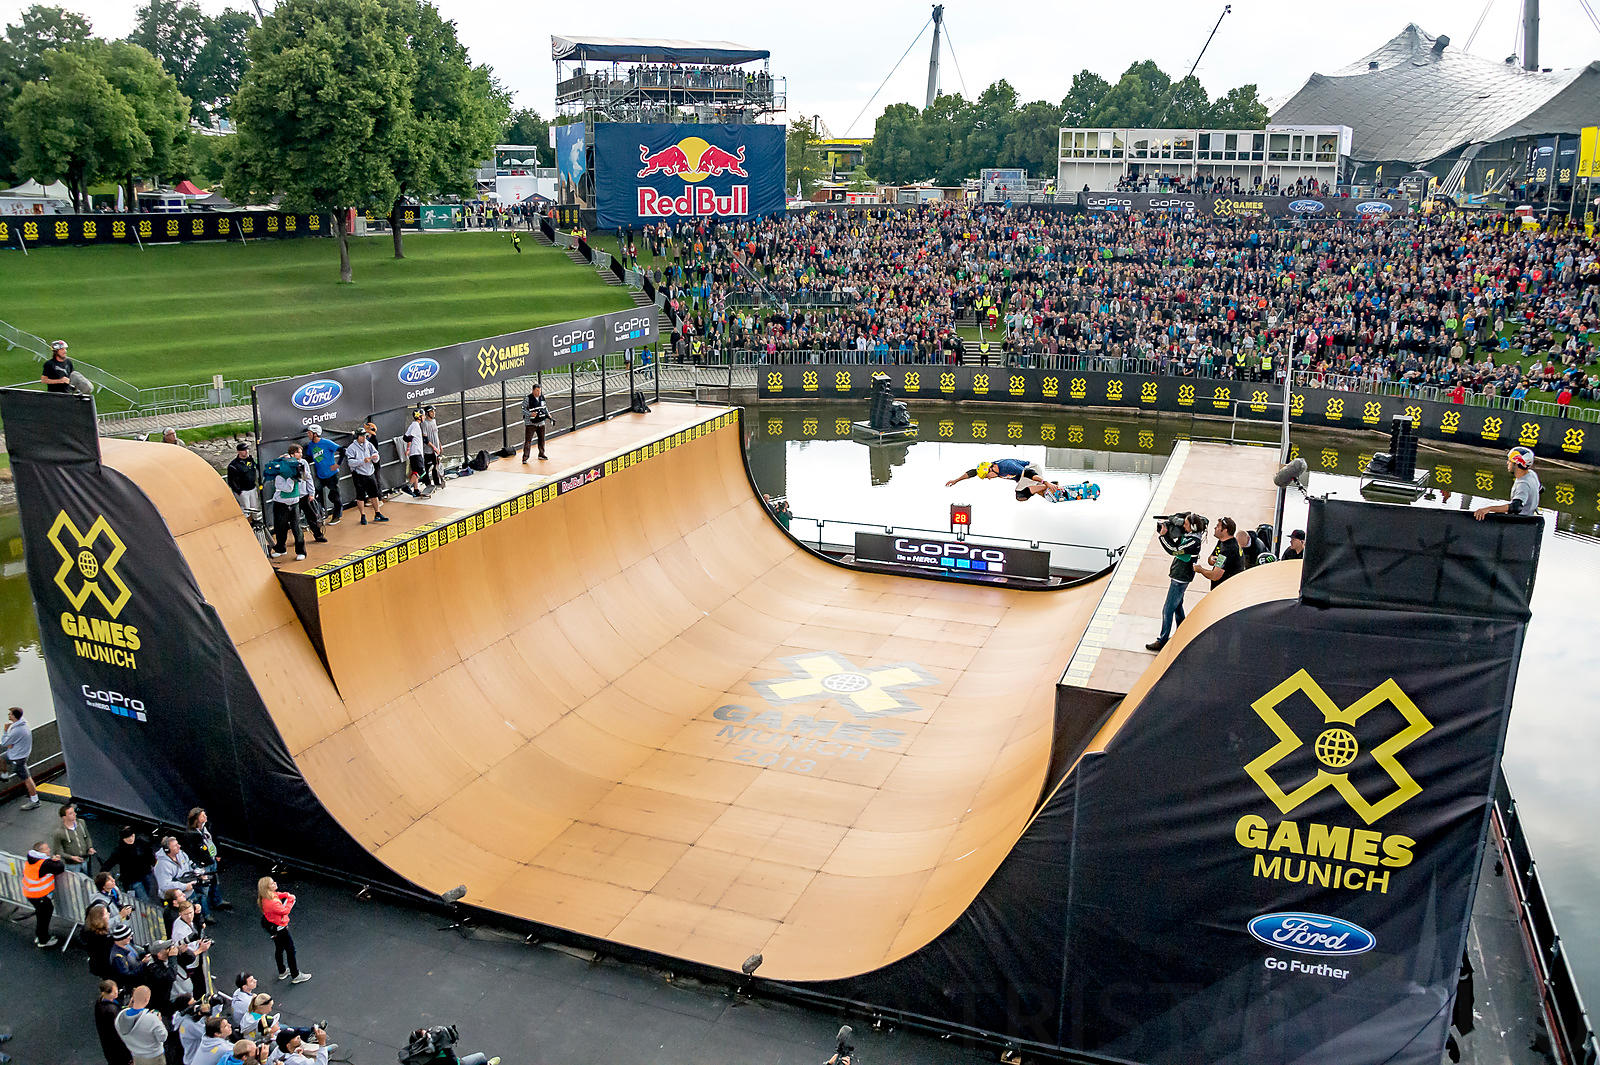 X Games Munich 2013 - June 27, 2013